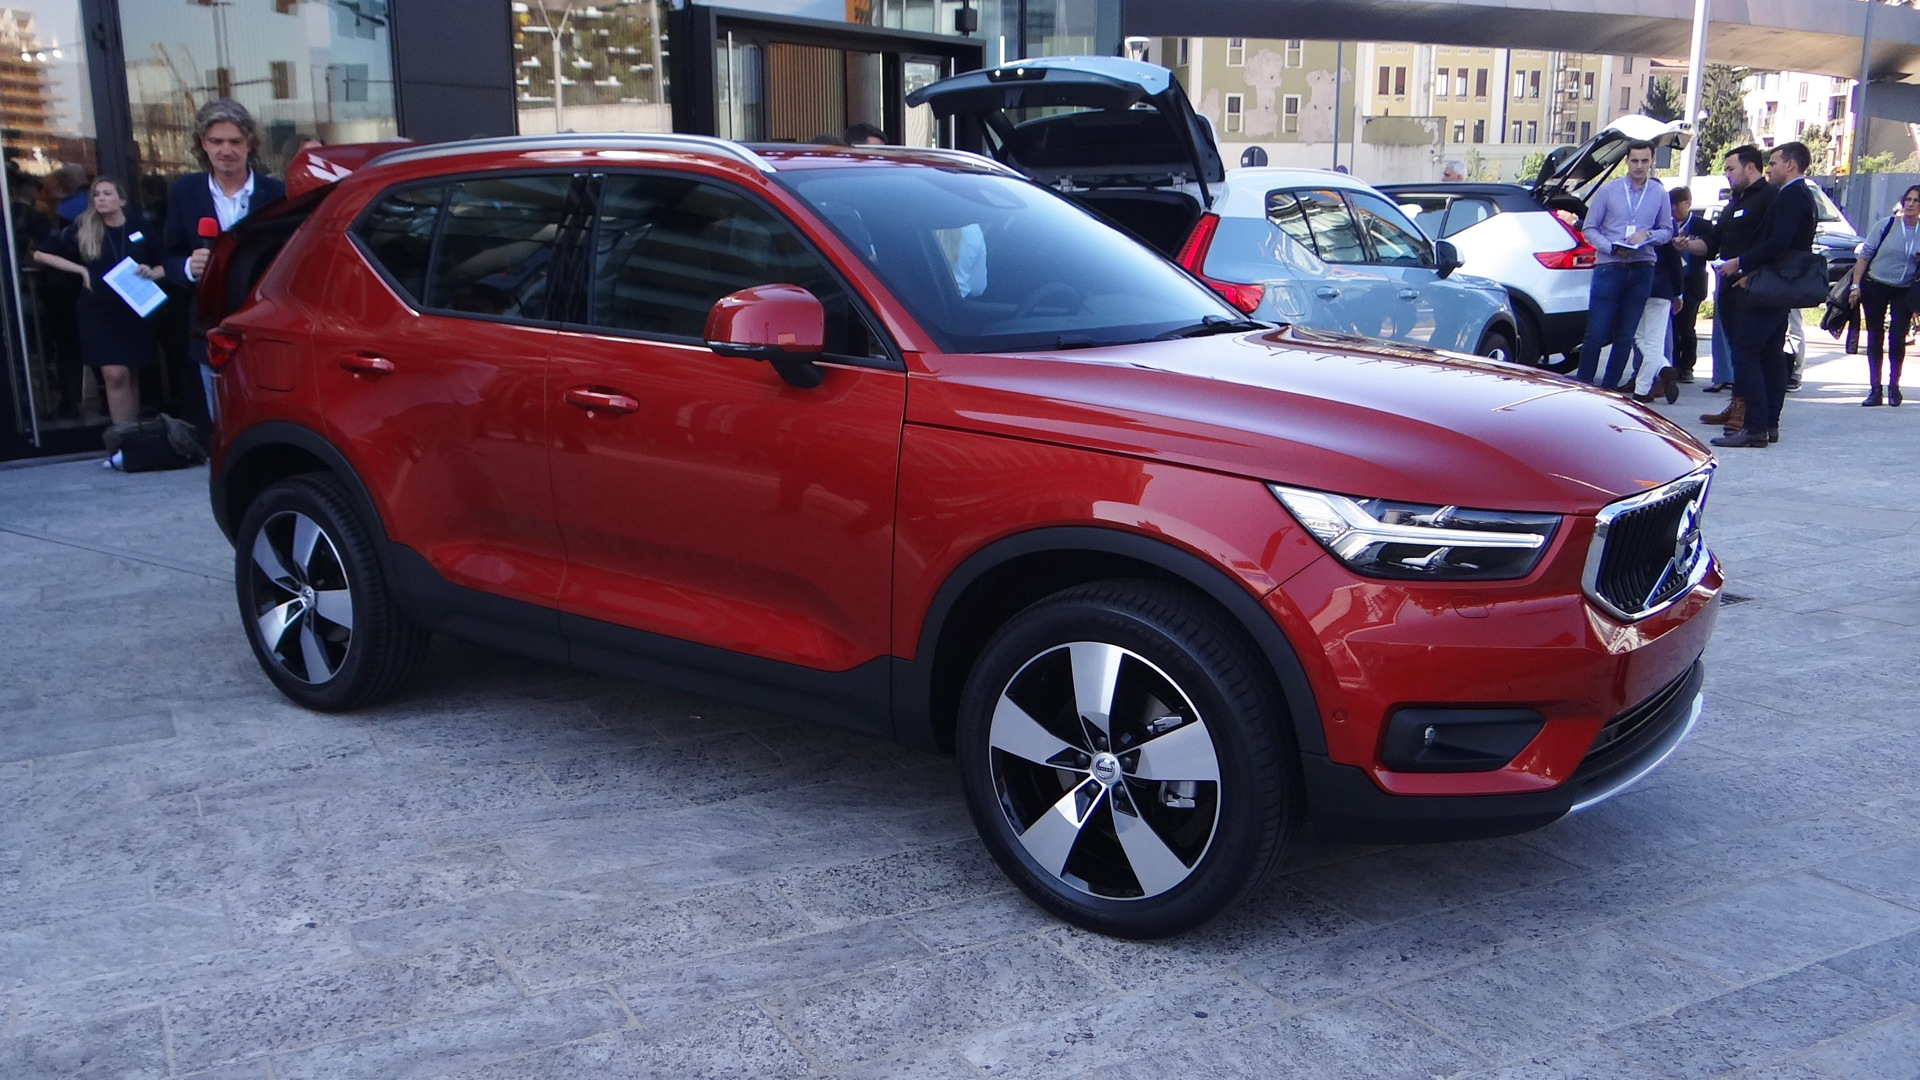 2019 Volvo Xc40 Small Suv To Become Brand S First Electric Car